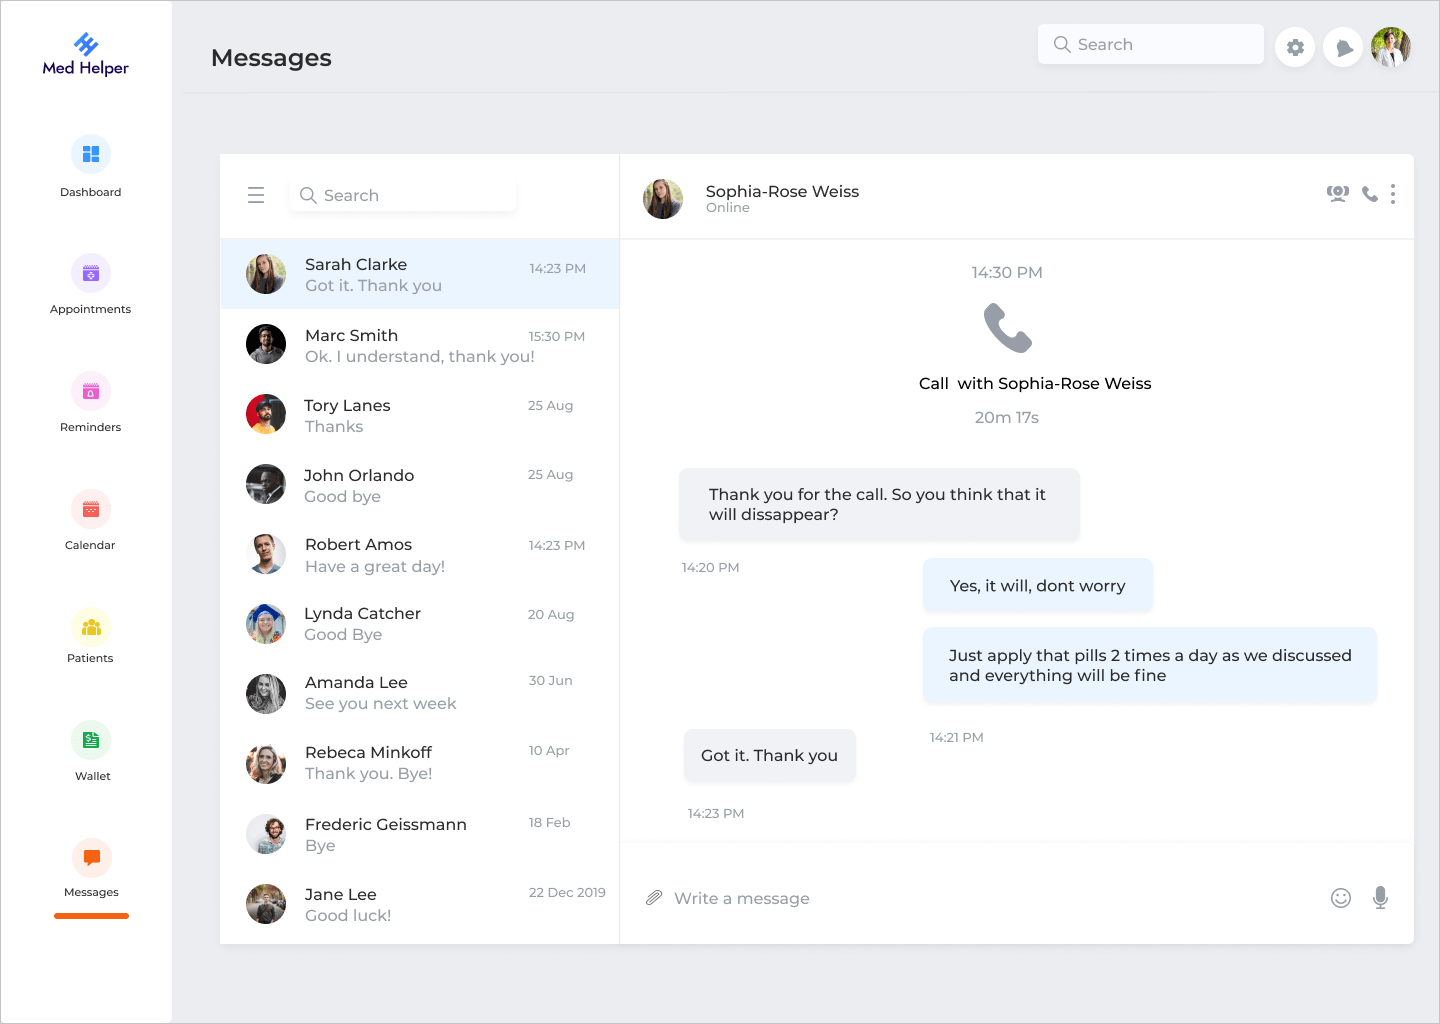 Messages feature